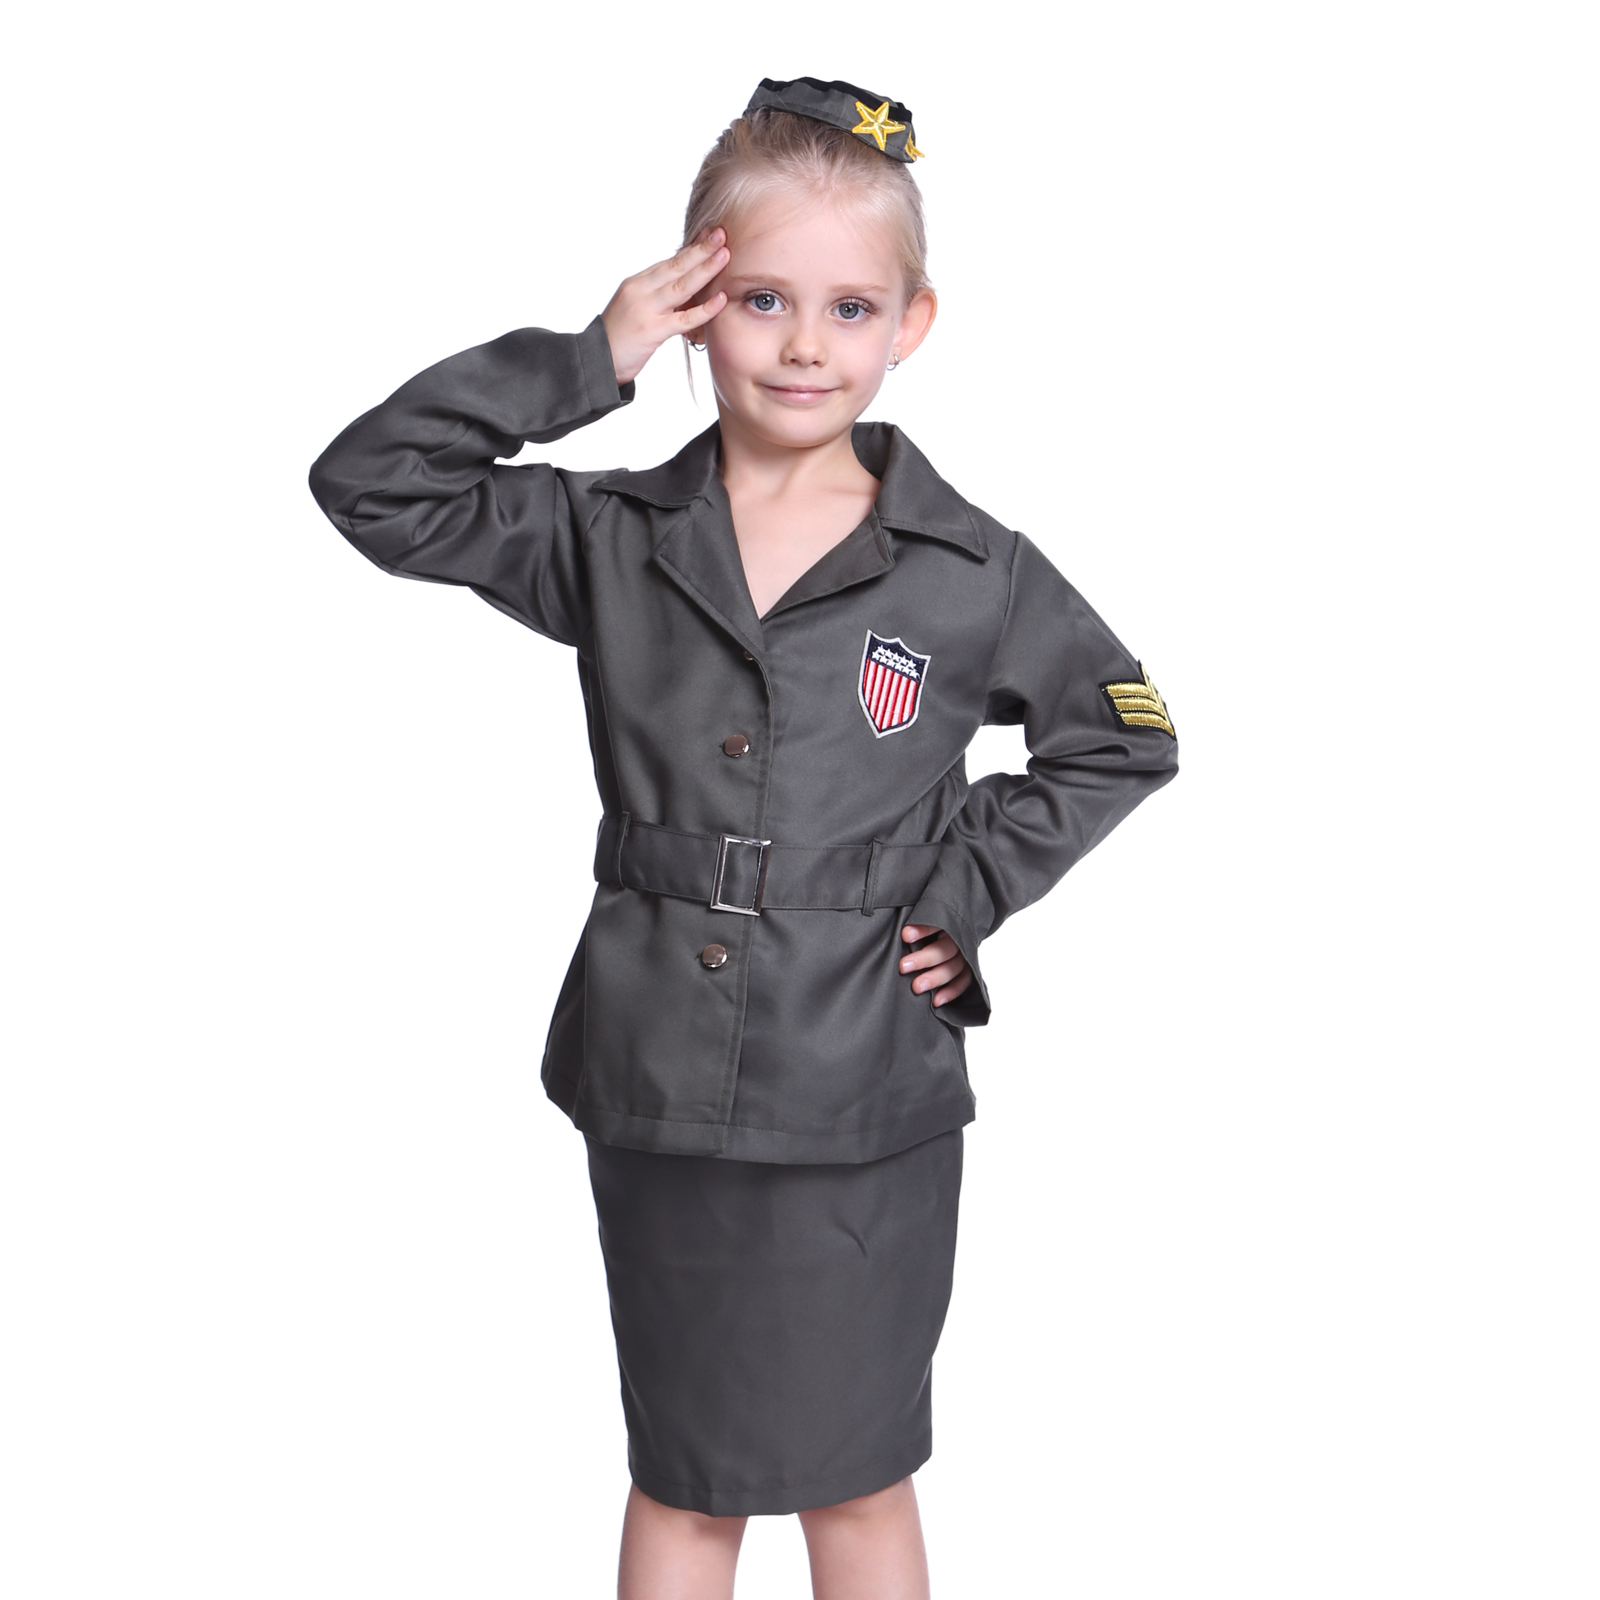 Buy Kids Military Uniforms from STORENAME. Receive exclusive sale offers and be the first to know about new products!